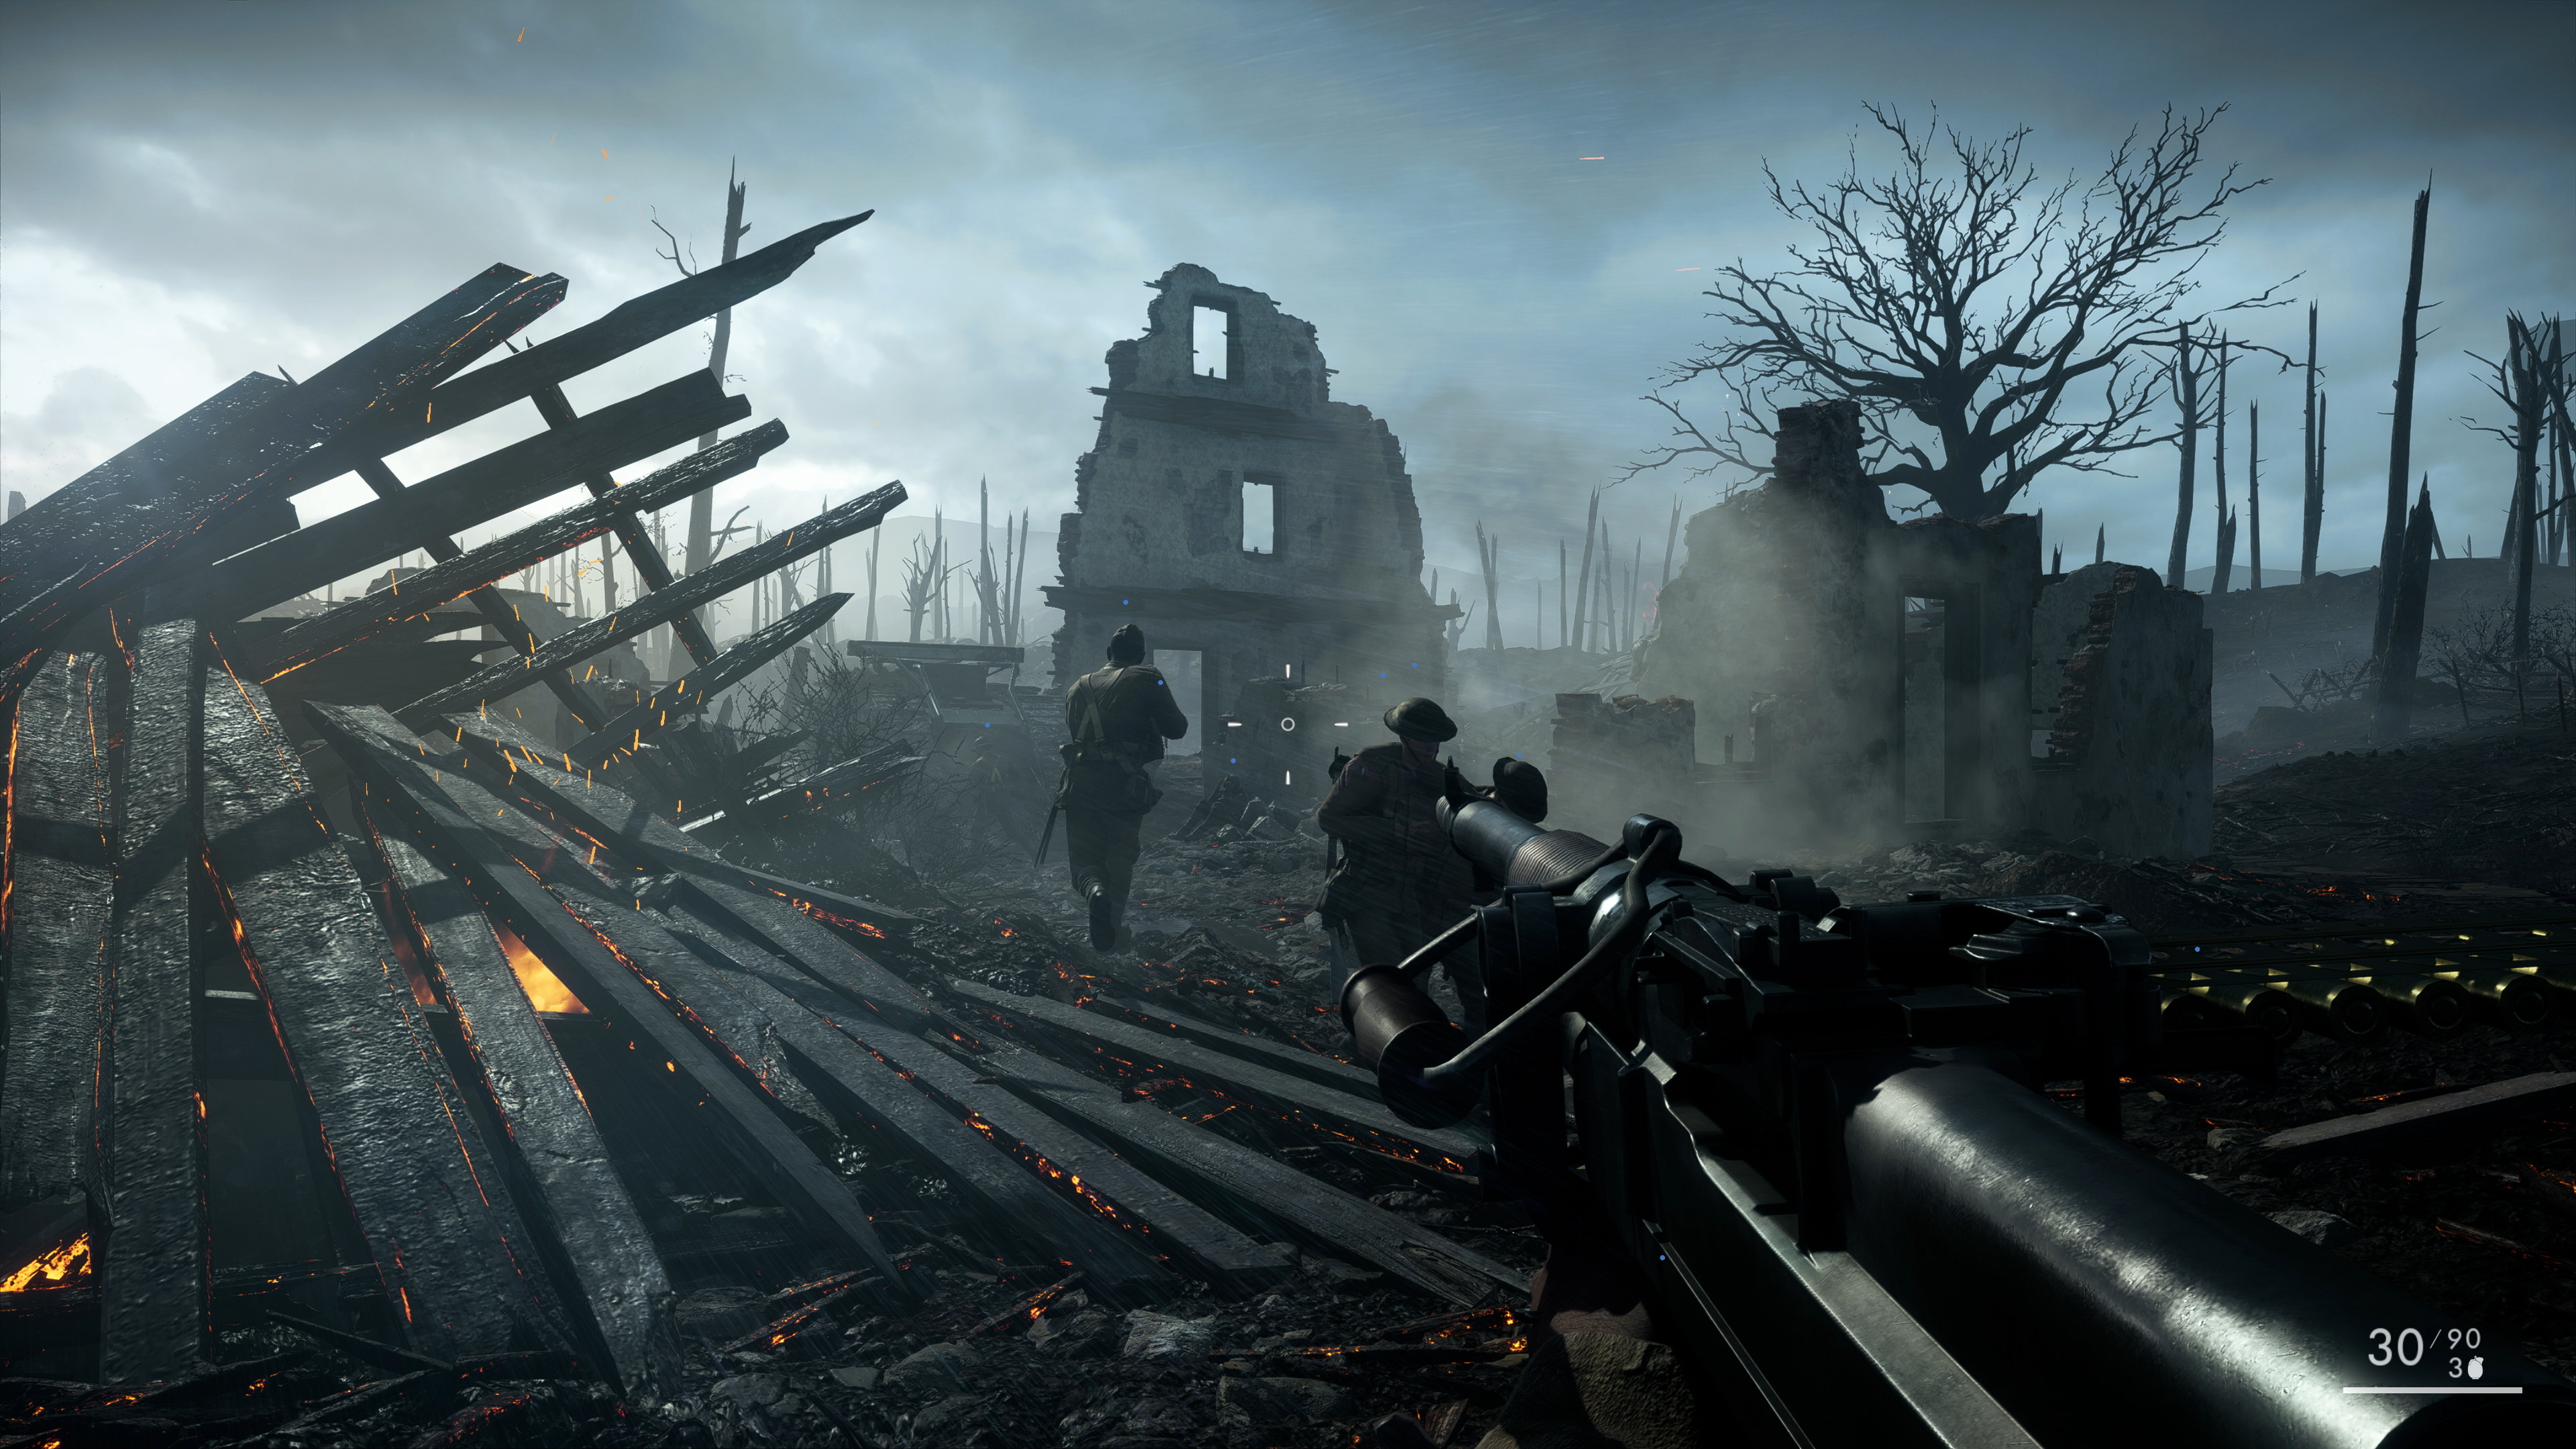 Battlefield 1's Xbox One X patch adds 4K support - but